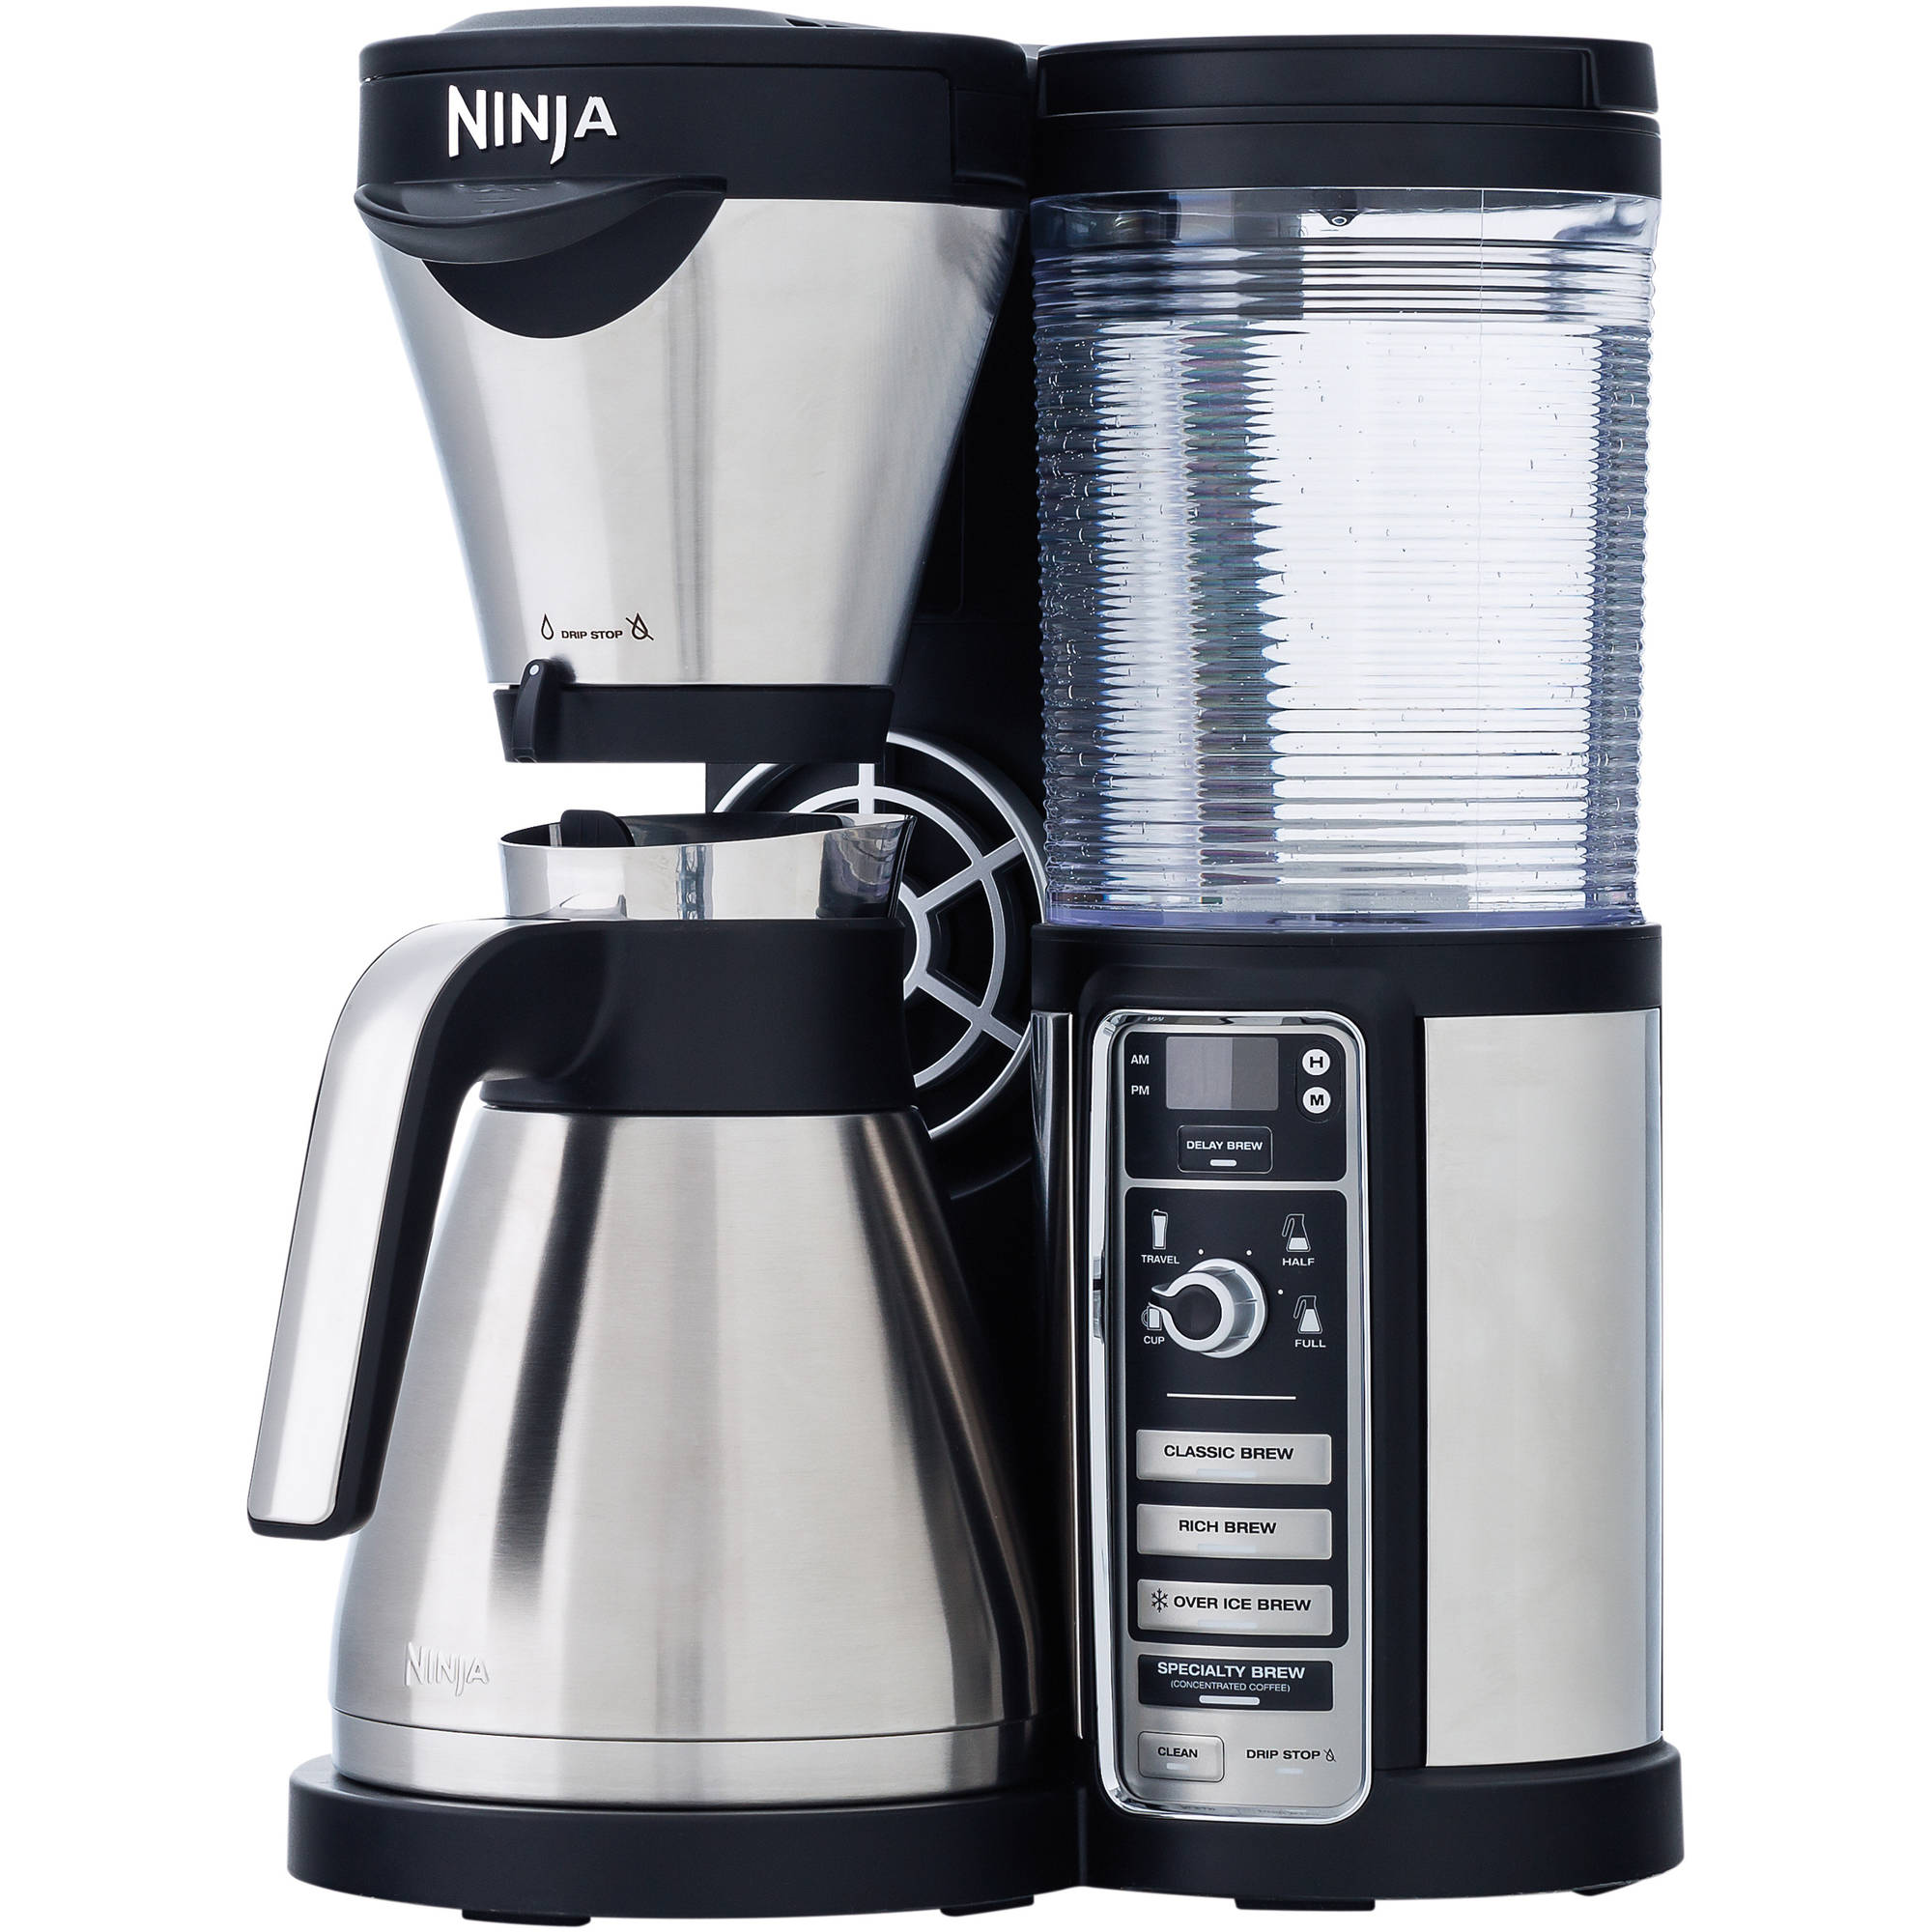 Thermal Coffee Maker Best Reviews : Black & Decker 8-Cup Thermal Programmable Coffee Maker, Stainless Steel and Black - Walmart.com